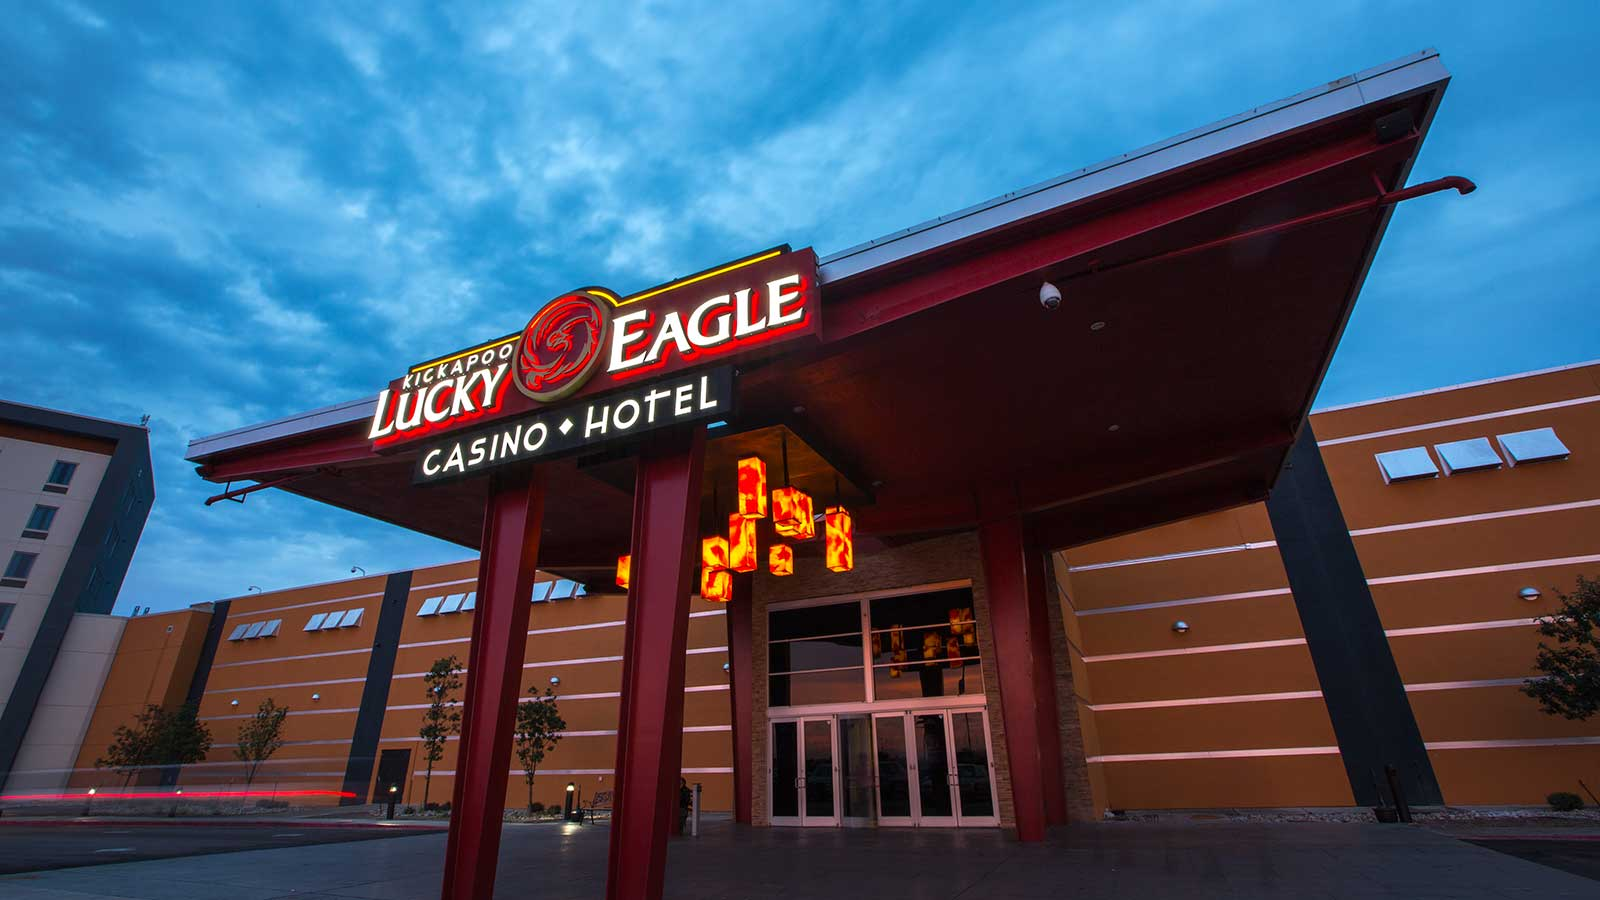 Dunigan casino u.s.cracks down on online gambling